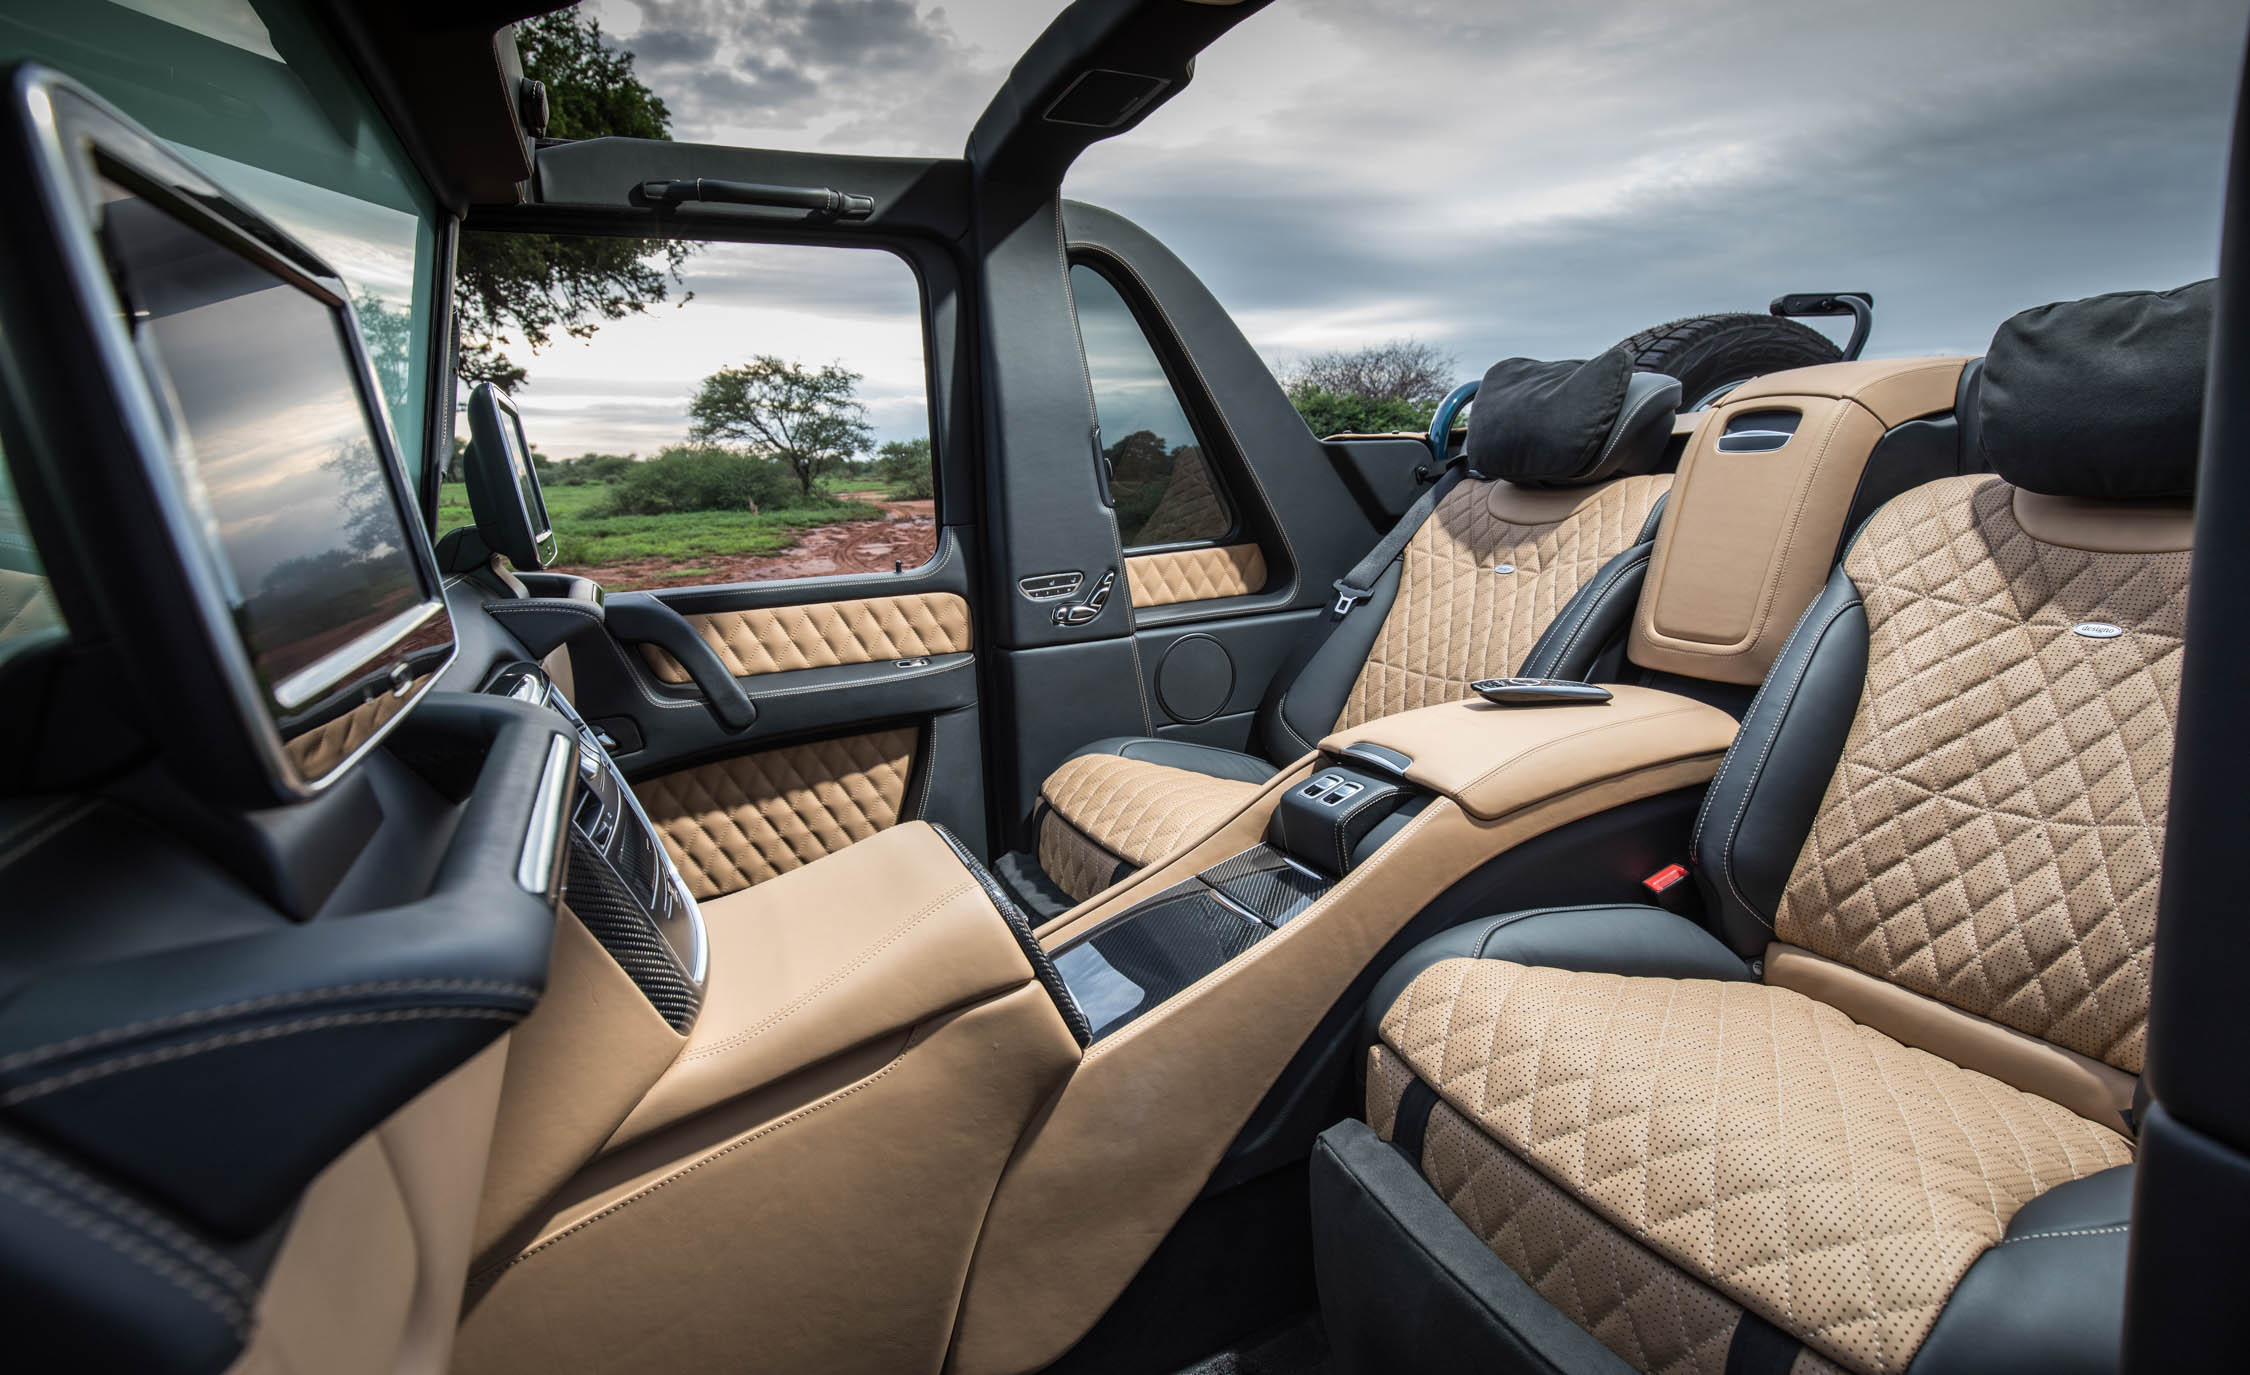 2018 Mercedes Maybach G650 Landaulet Interior Seats Rear (Photo 28 of 52)